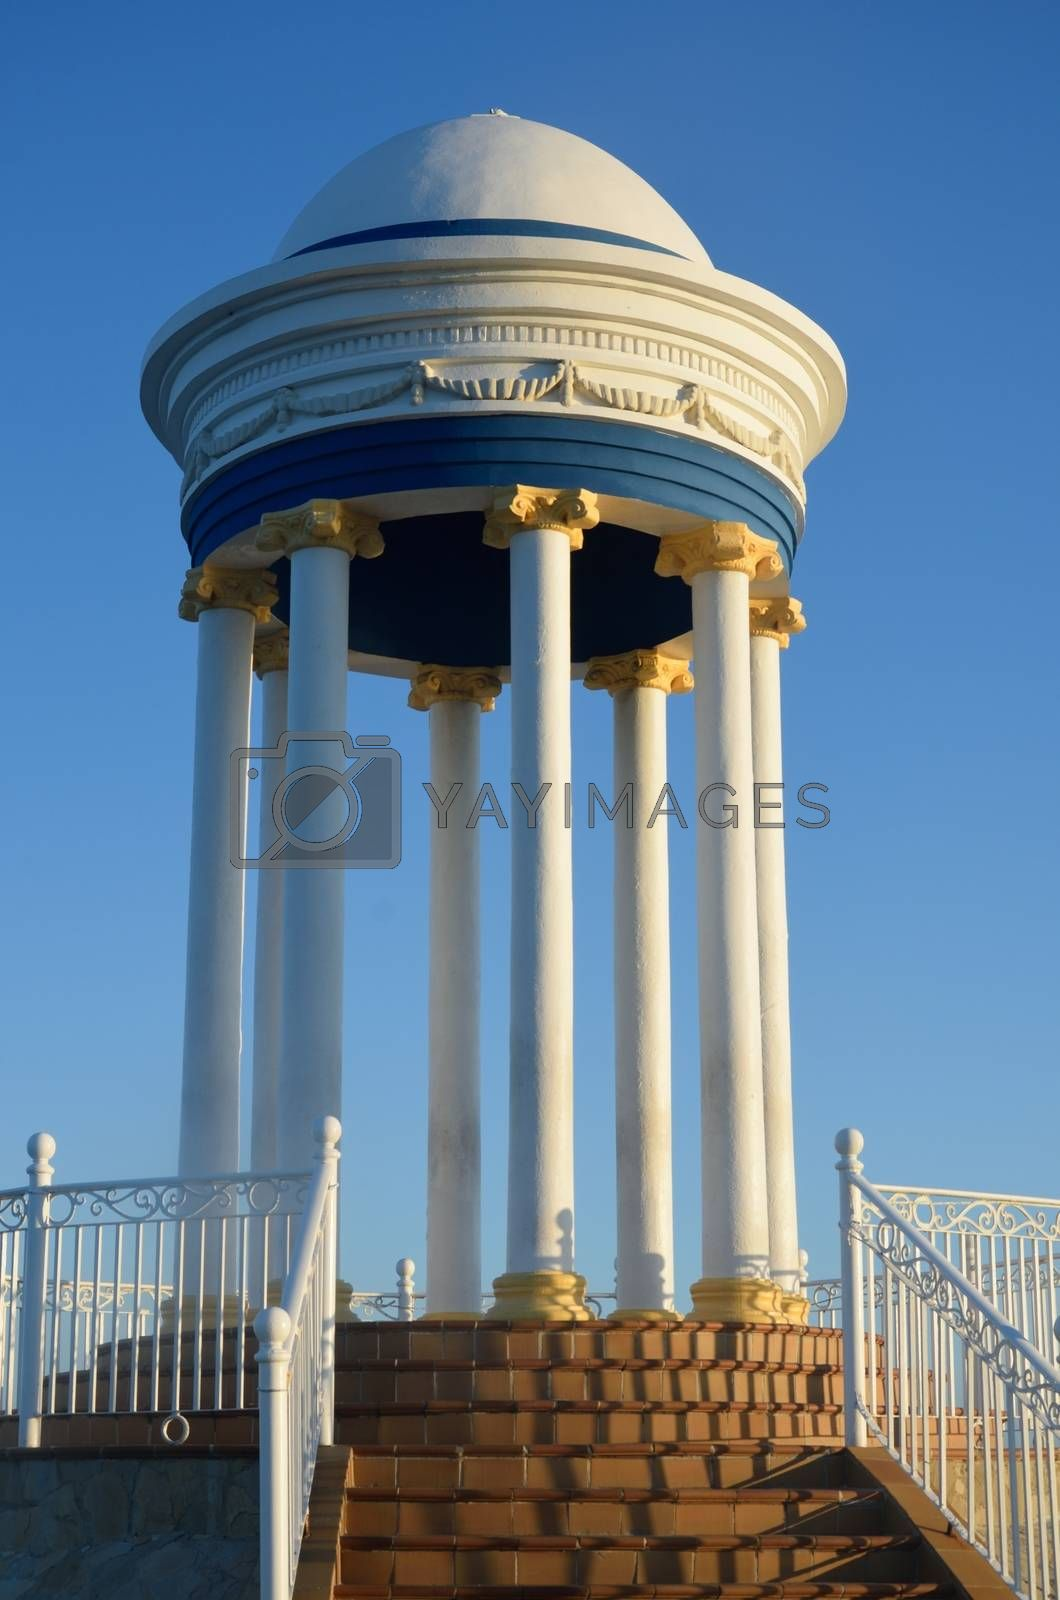 White Dome with Blue Sky in background